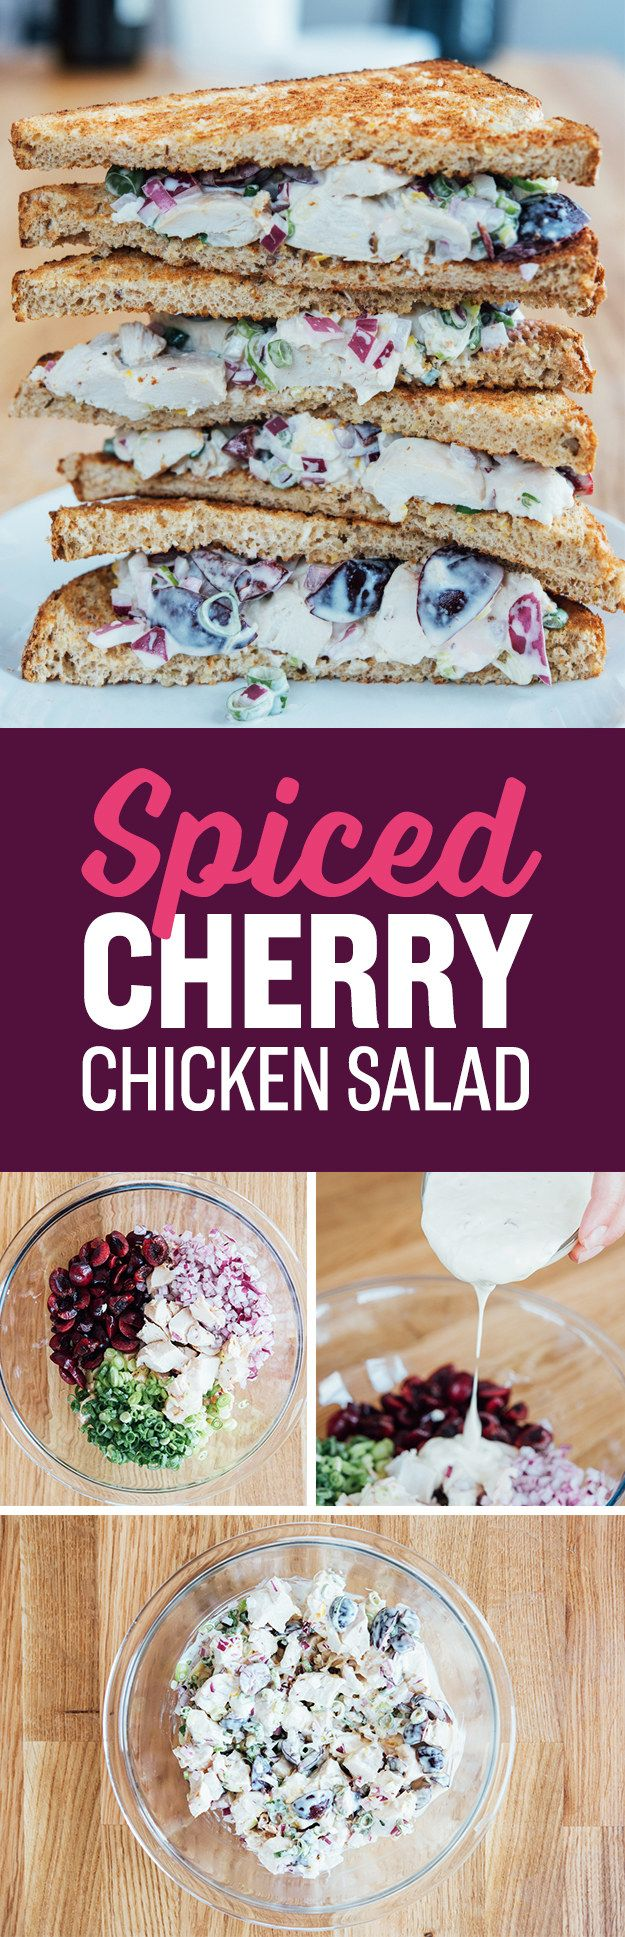 Spiced Cherry-Chicken Salad | 7 Easy Weeknight Recipes That Use Store-Bought…